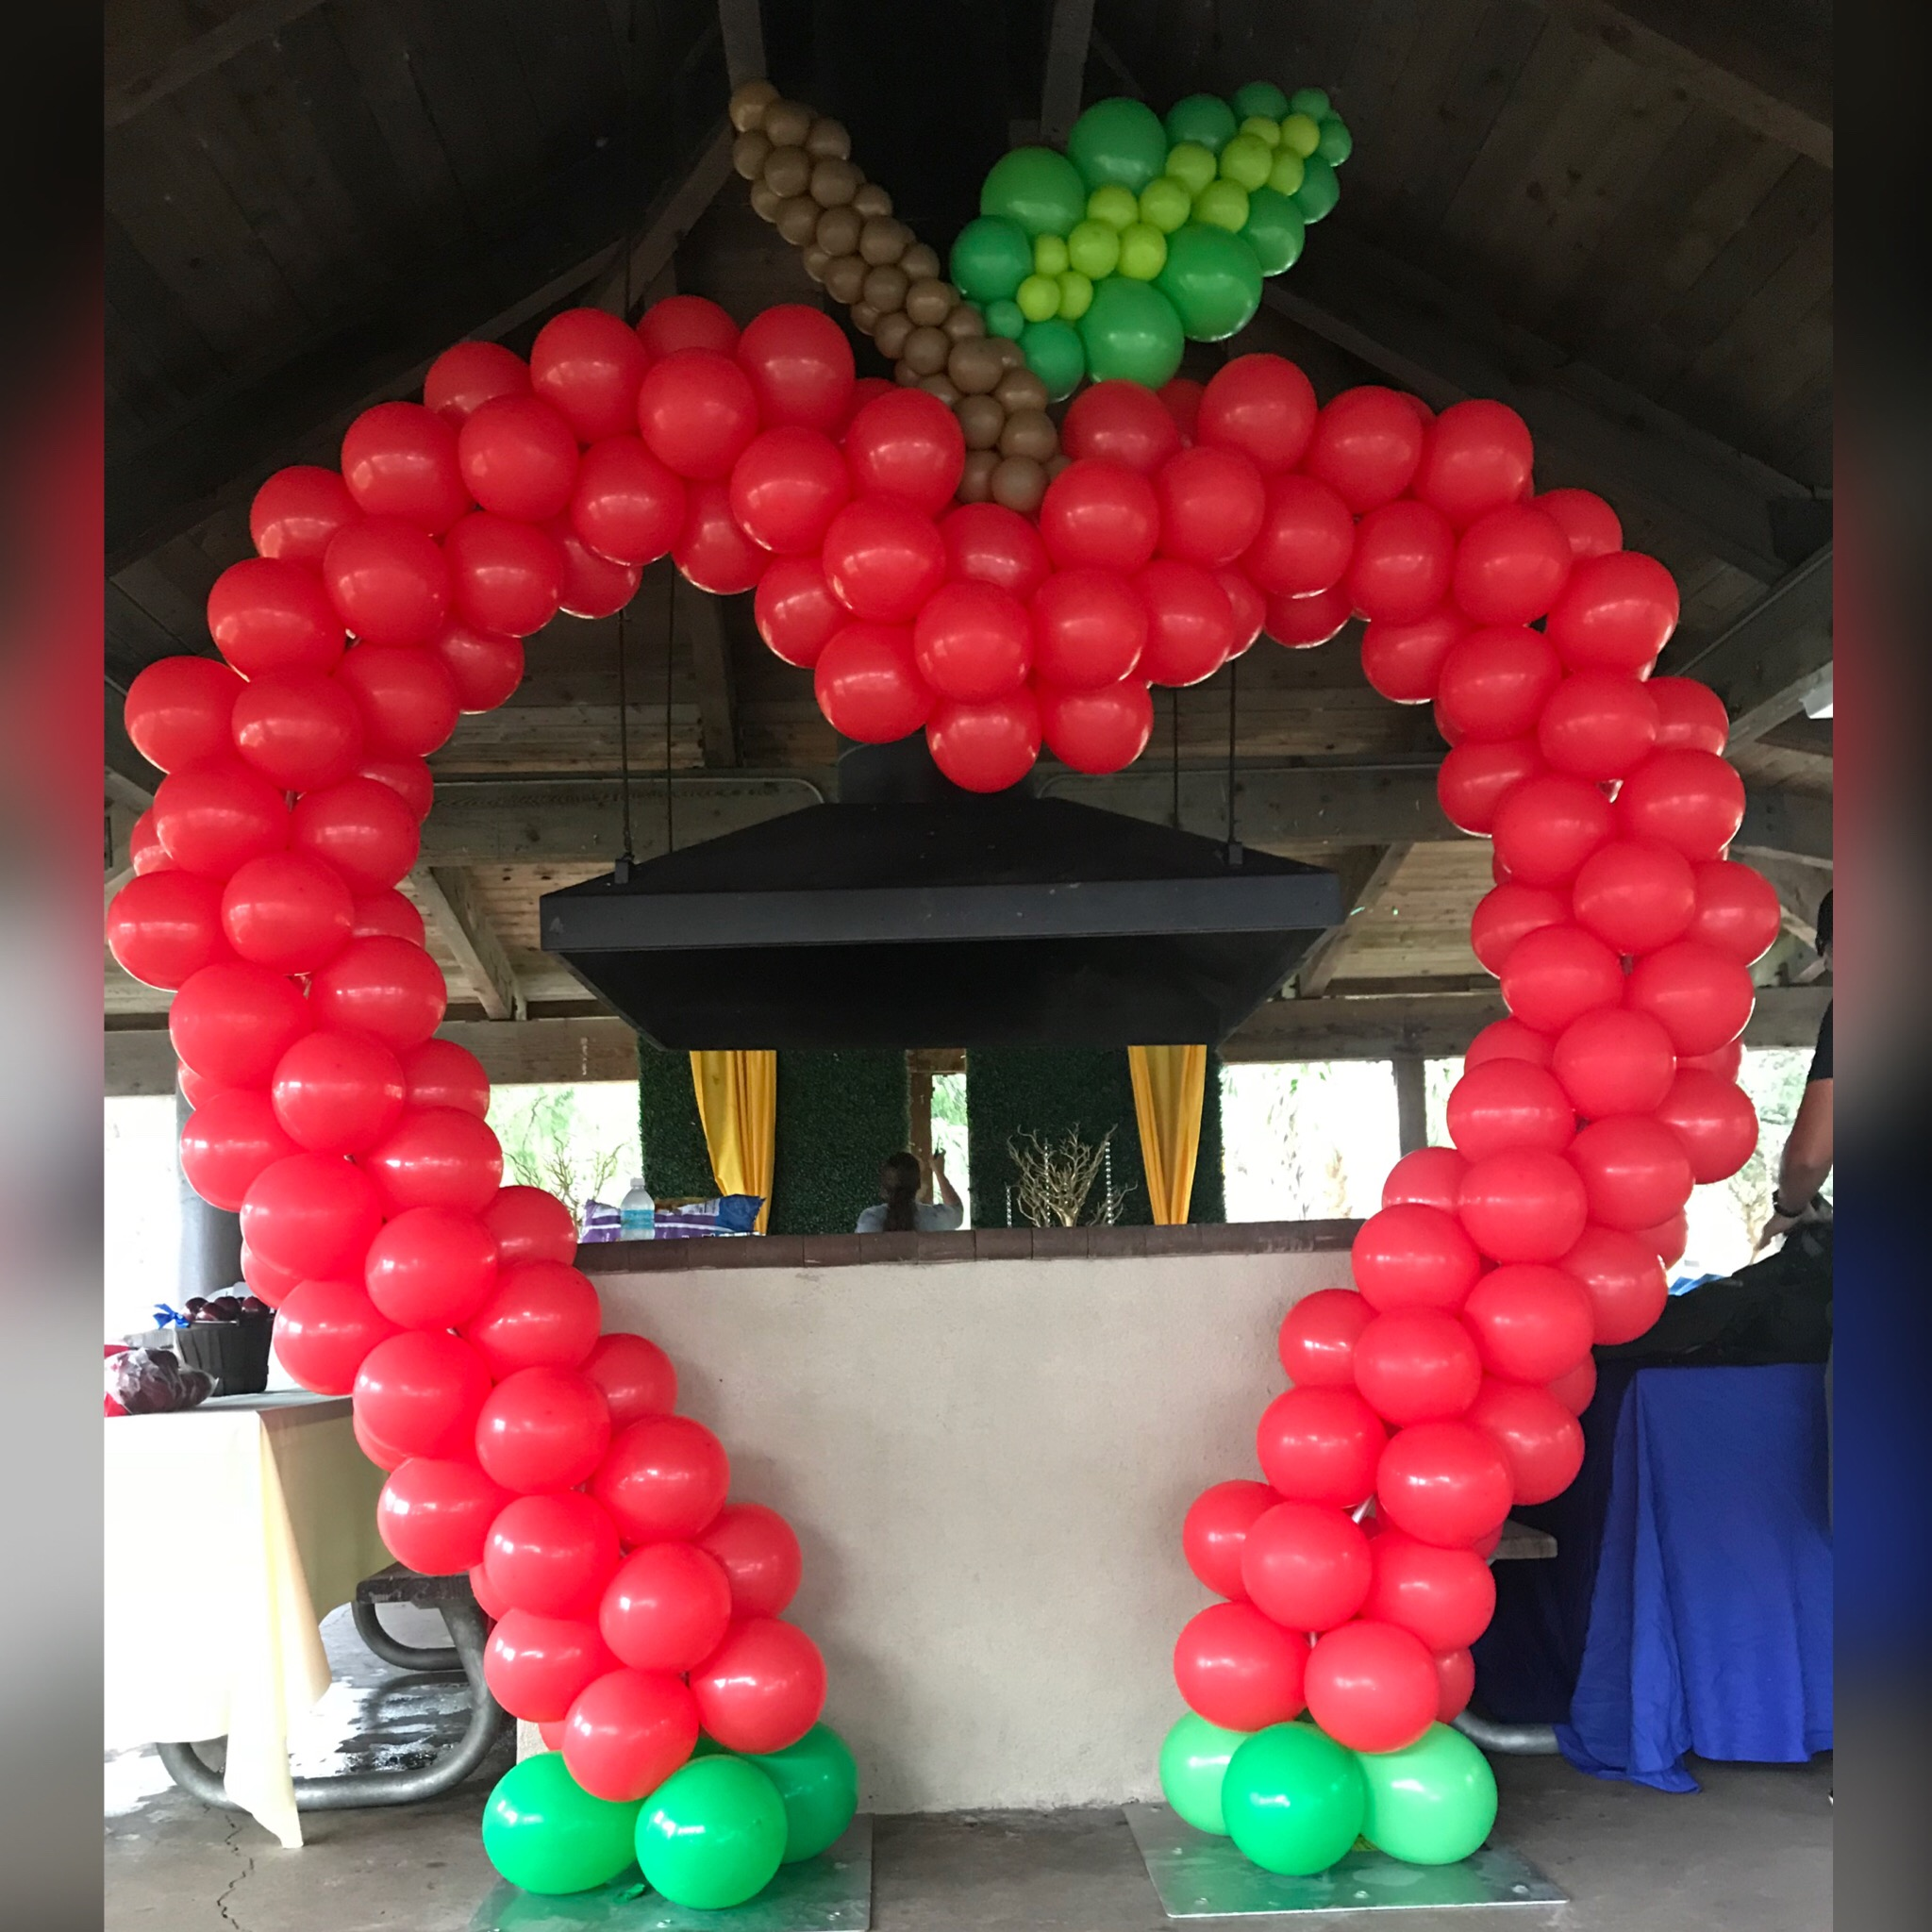 Snow White Apple Entrance balloon arch